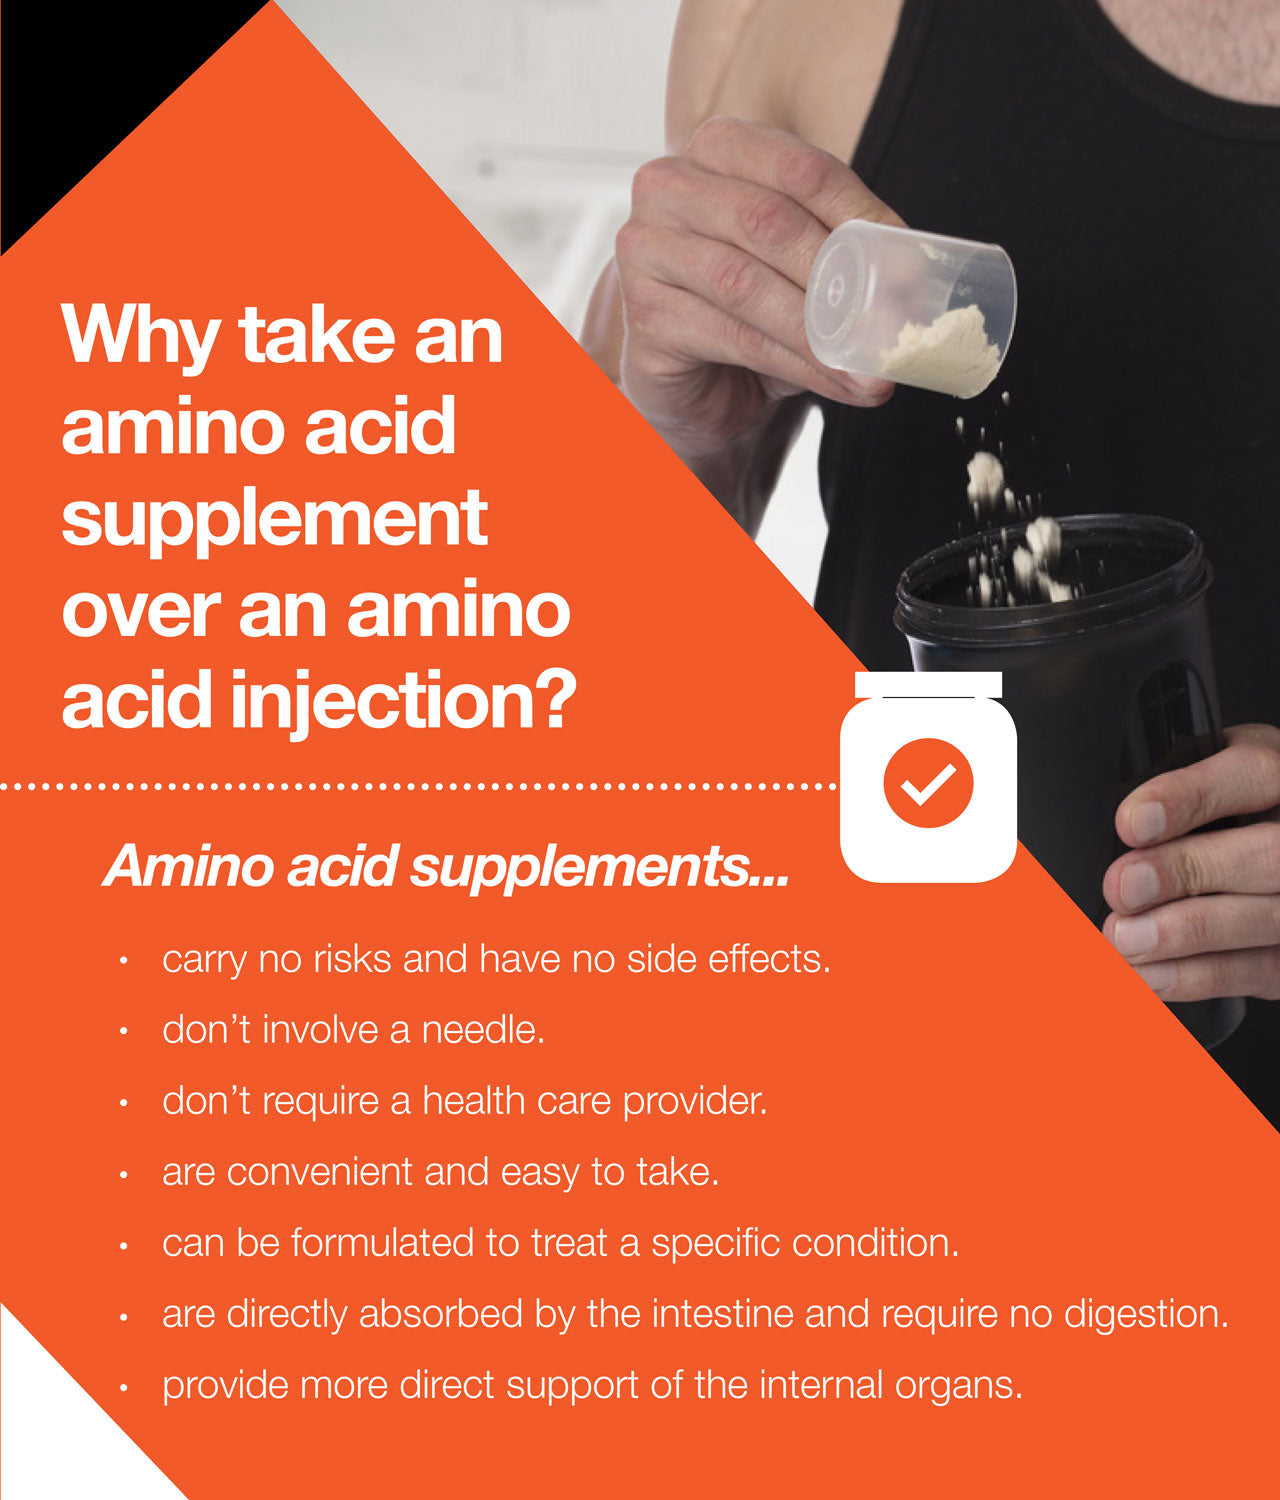 The benefits of taking amino acids orally